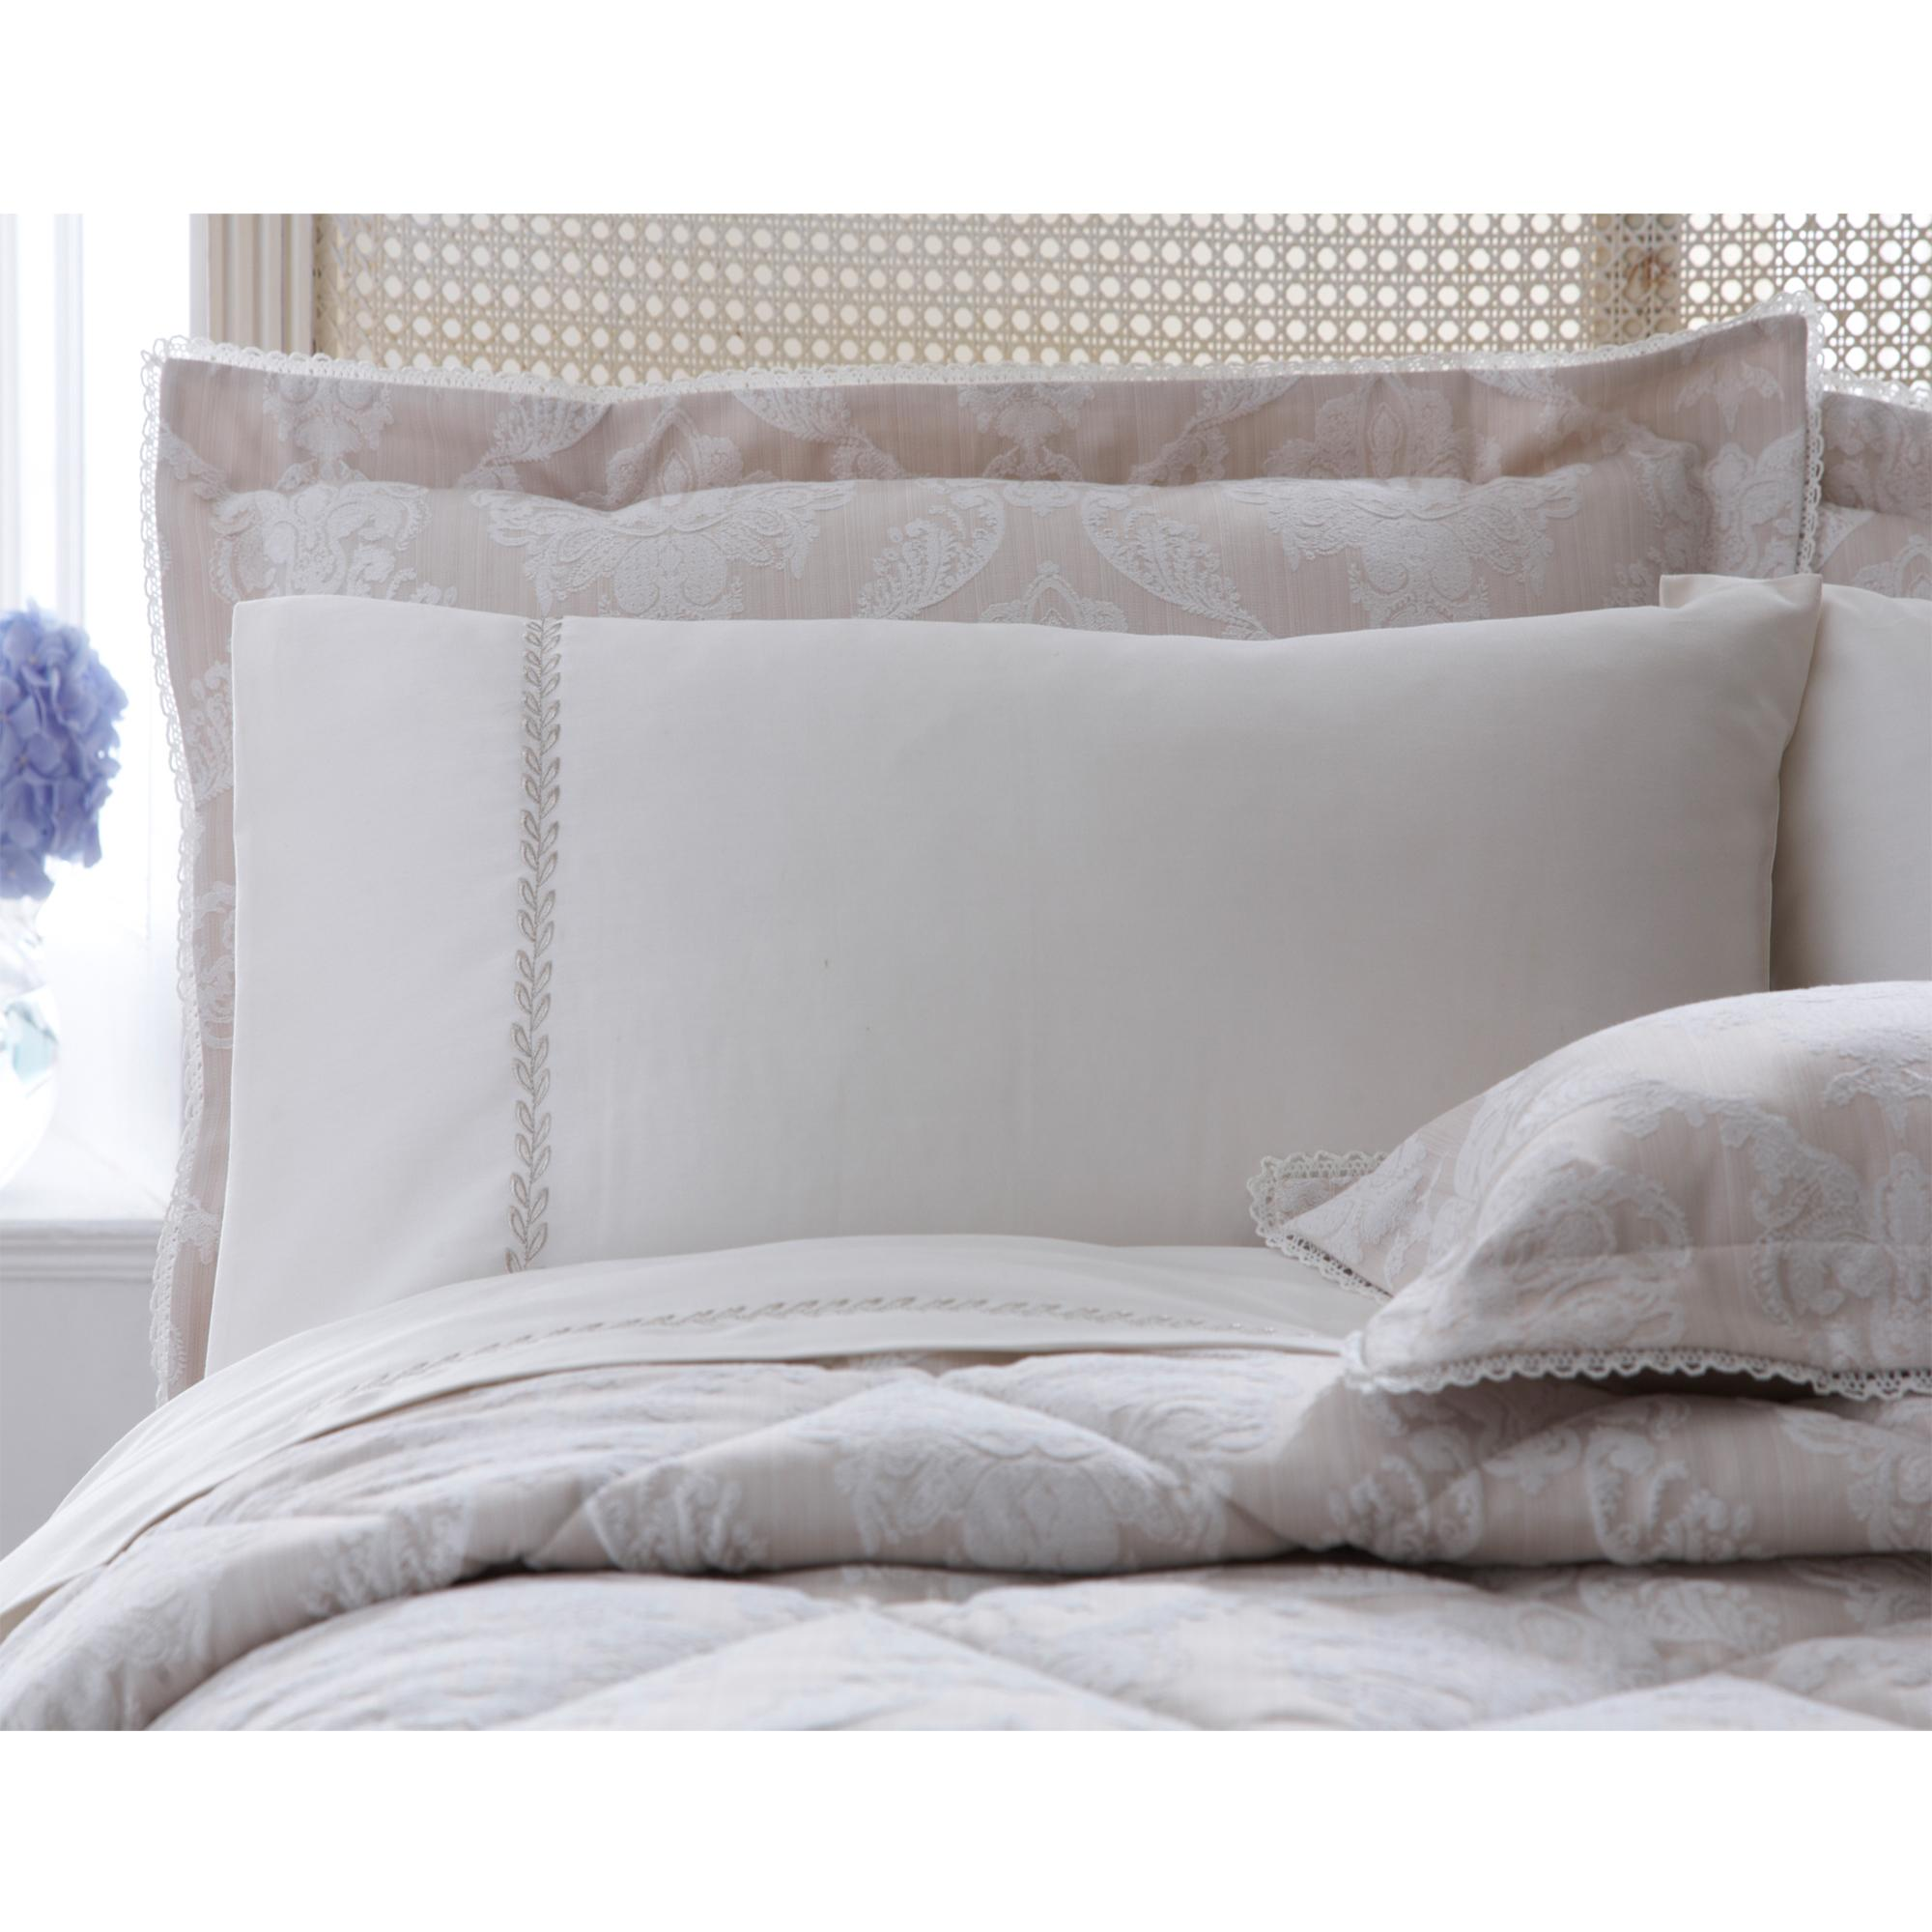 Dorma Natural Aveline Bedlinen Collection